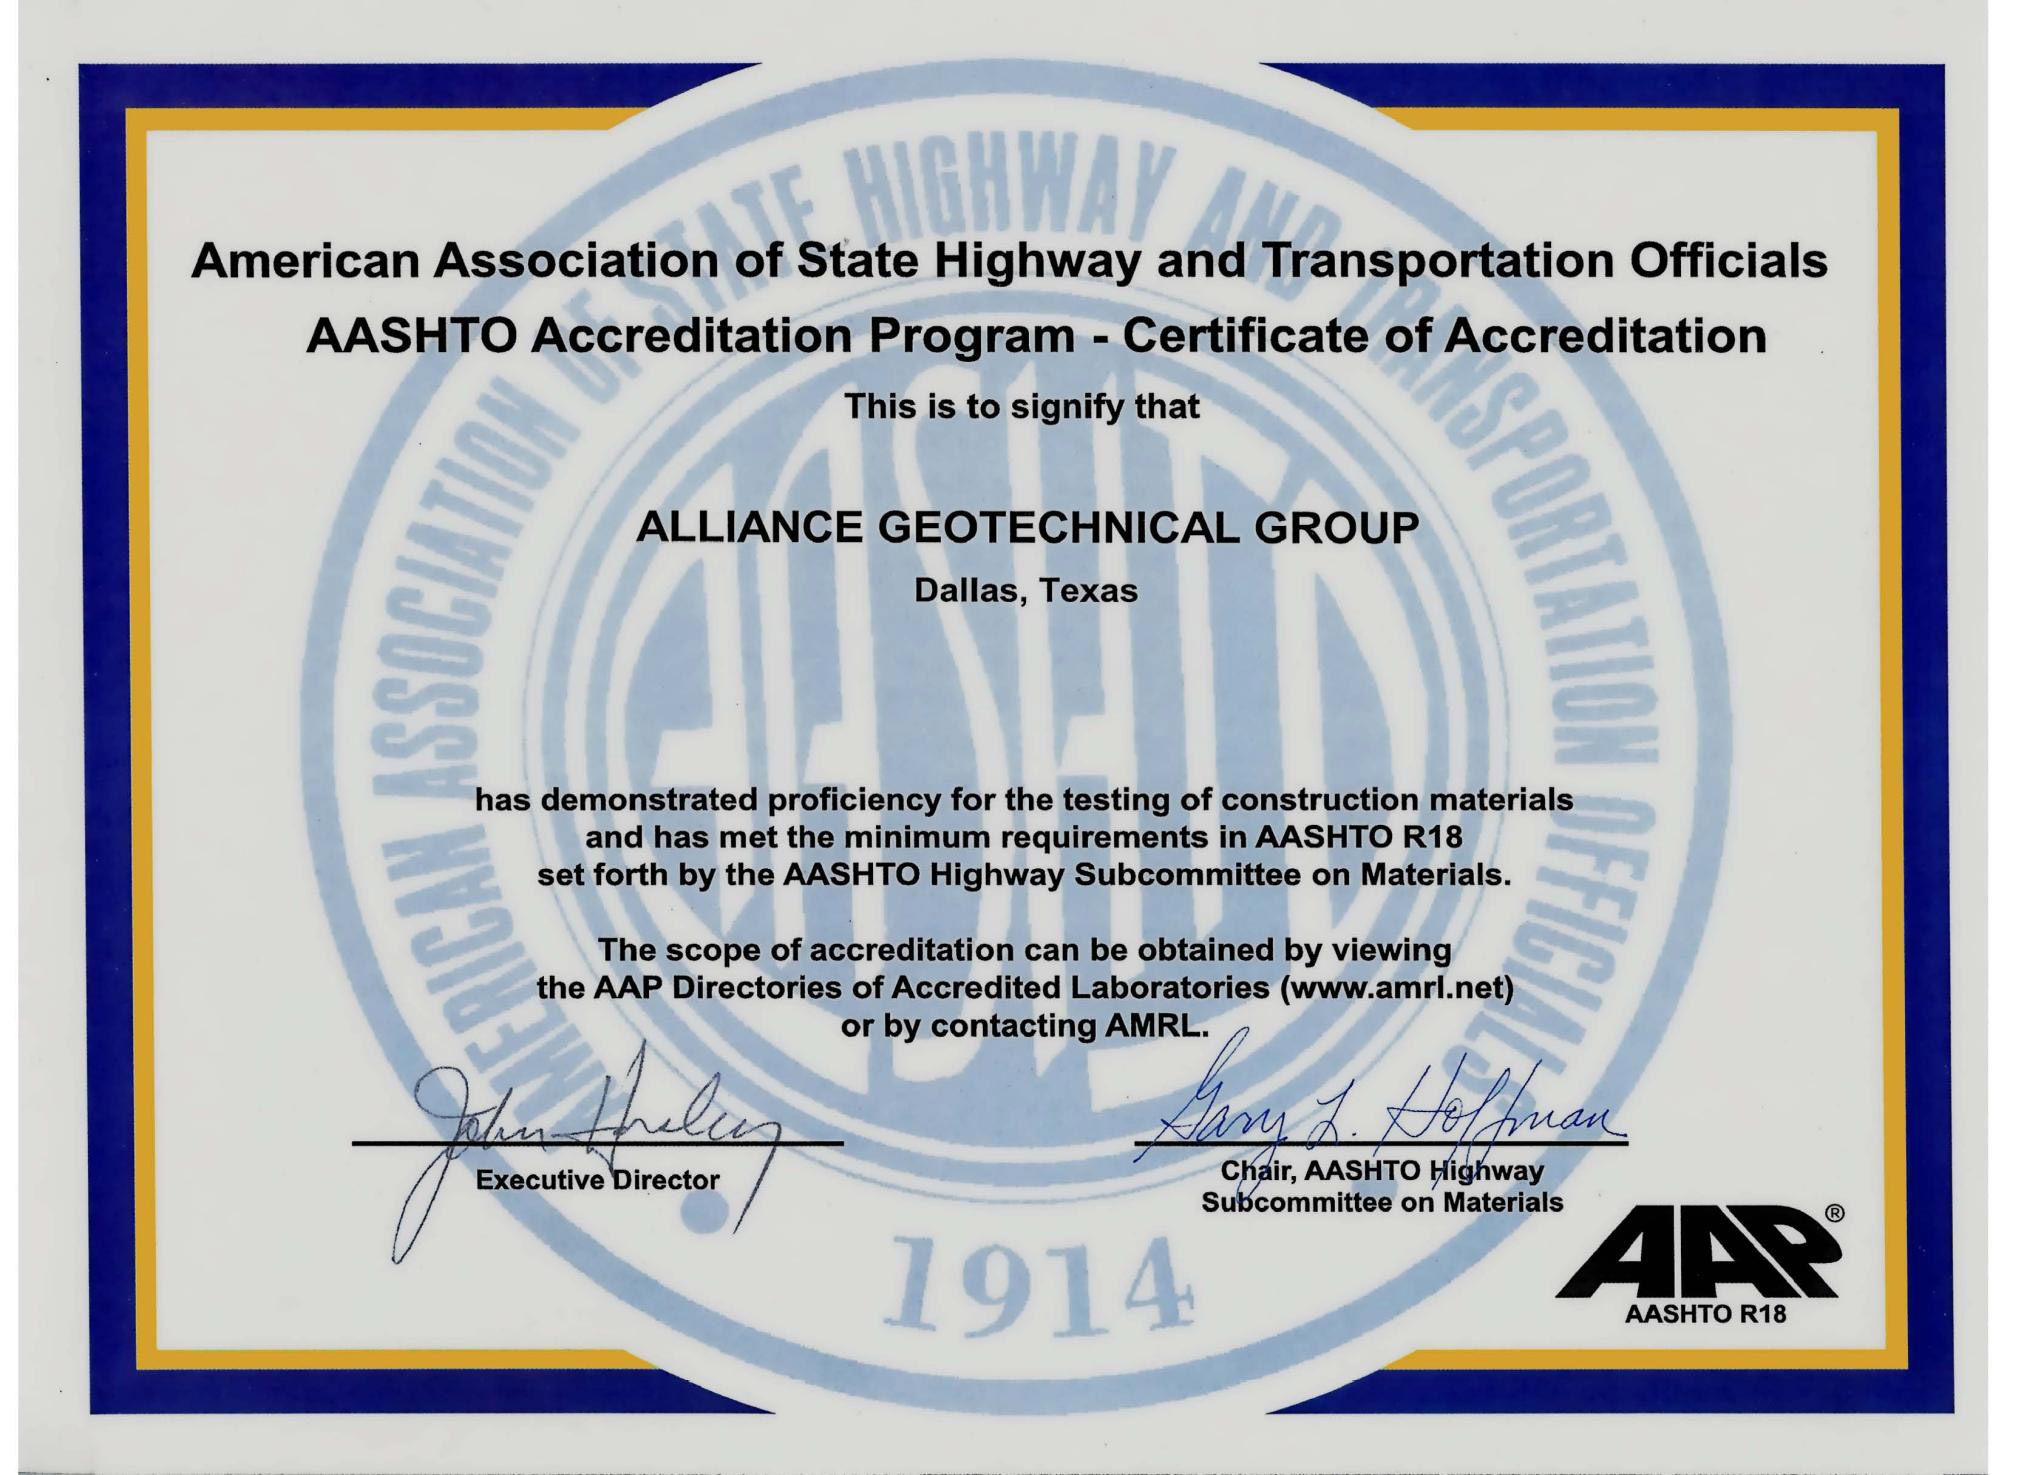 Certificate5g aashto certificate of accreditation yelopaper Images